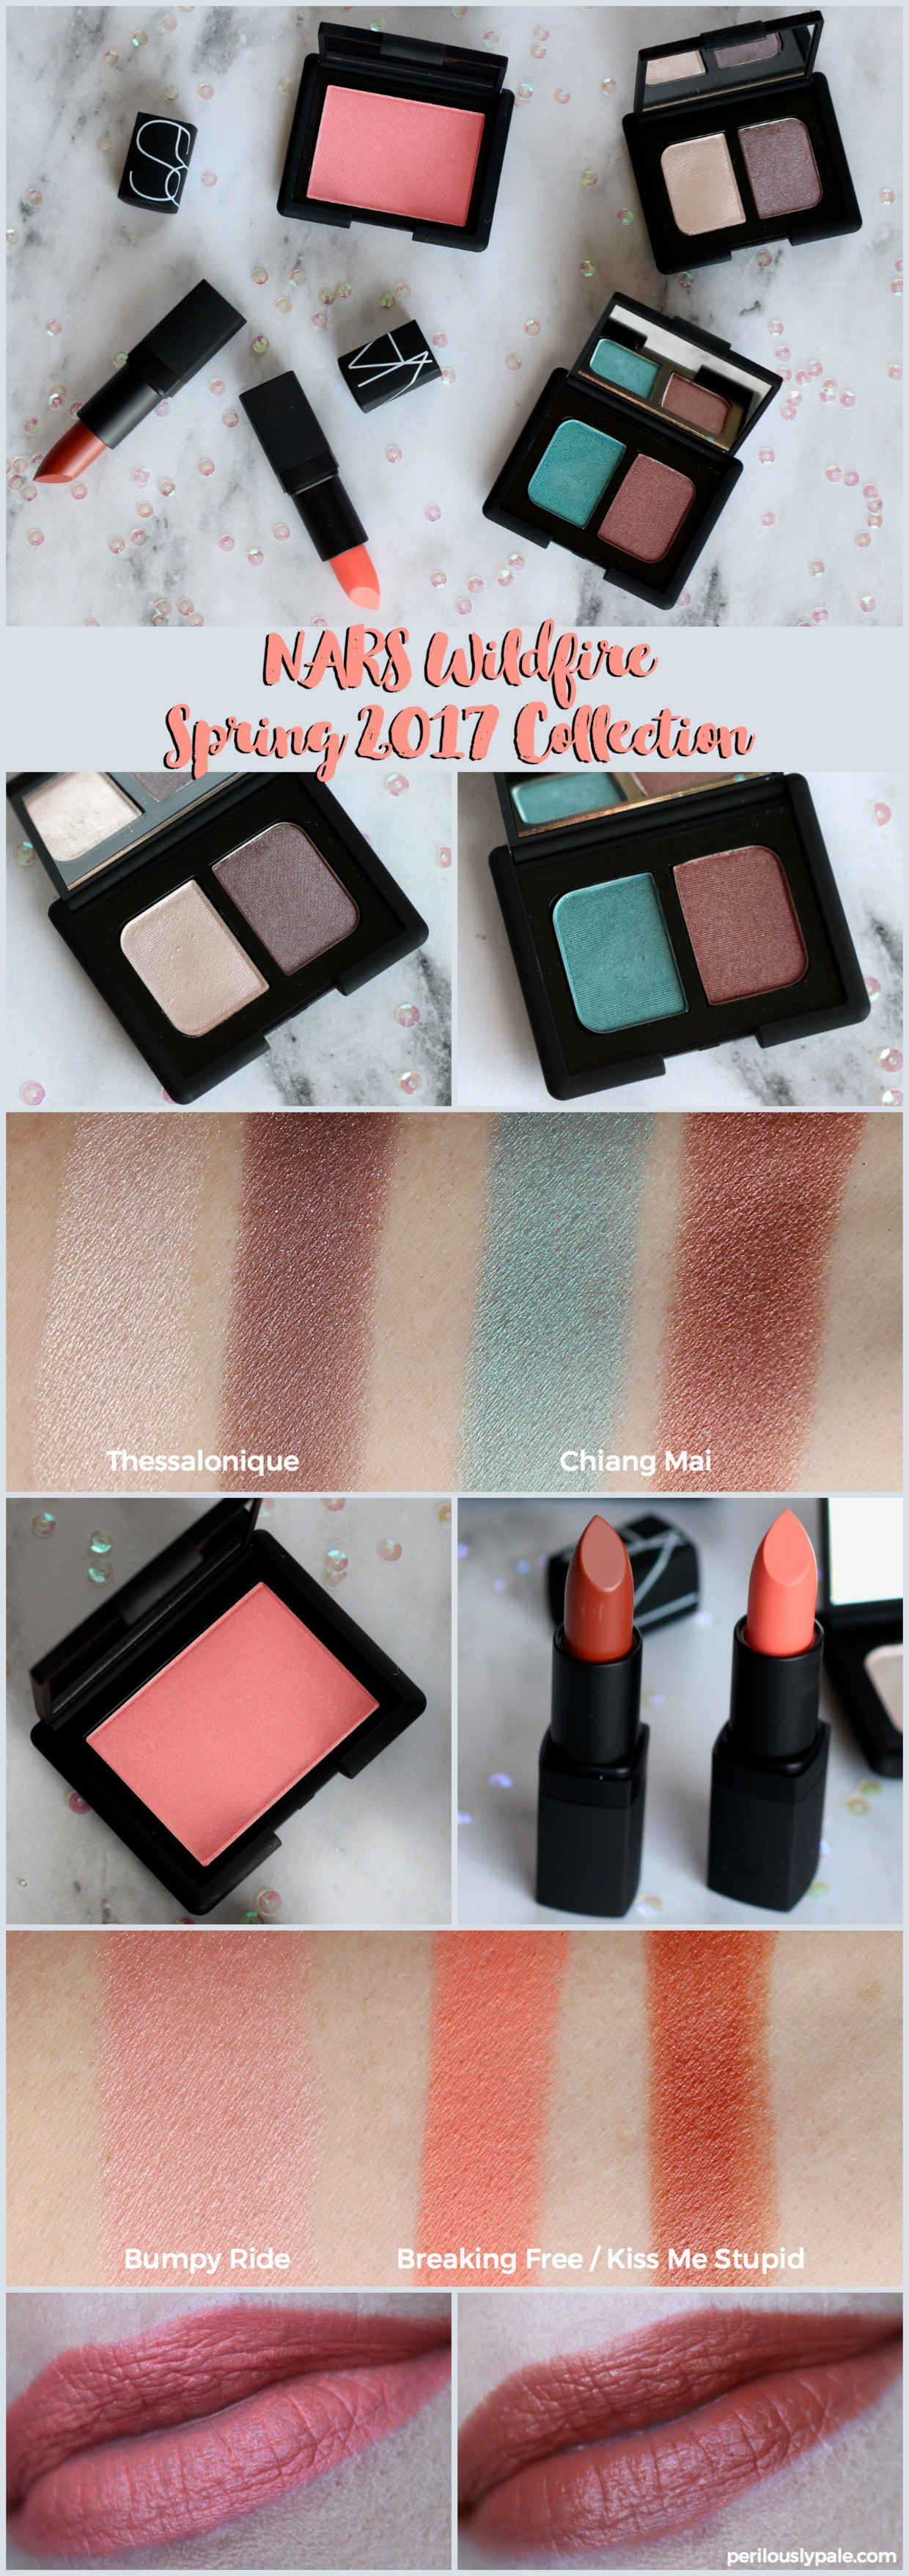 NARS Spring 2017 Wildfire Collection Review | Spring, (2017) and ...